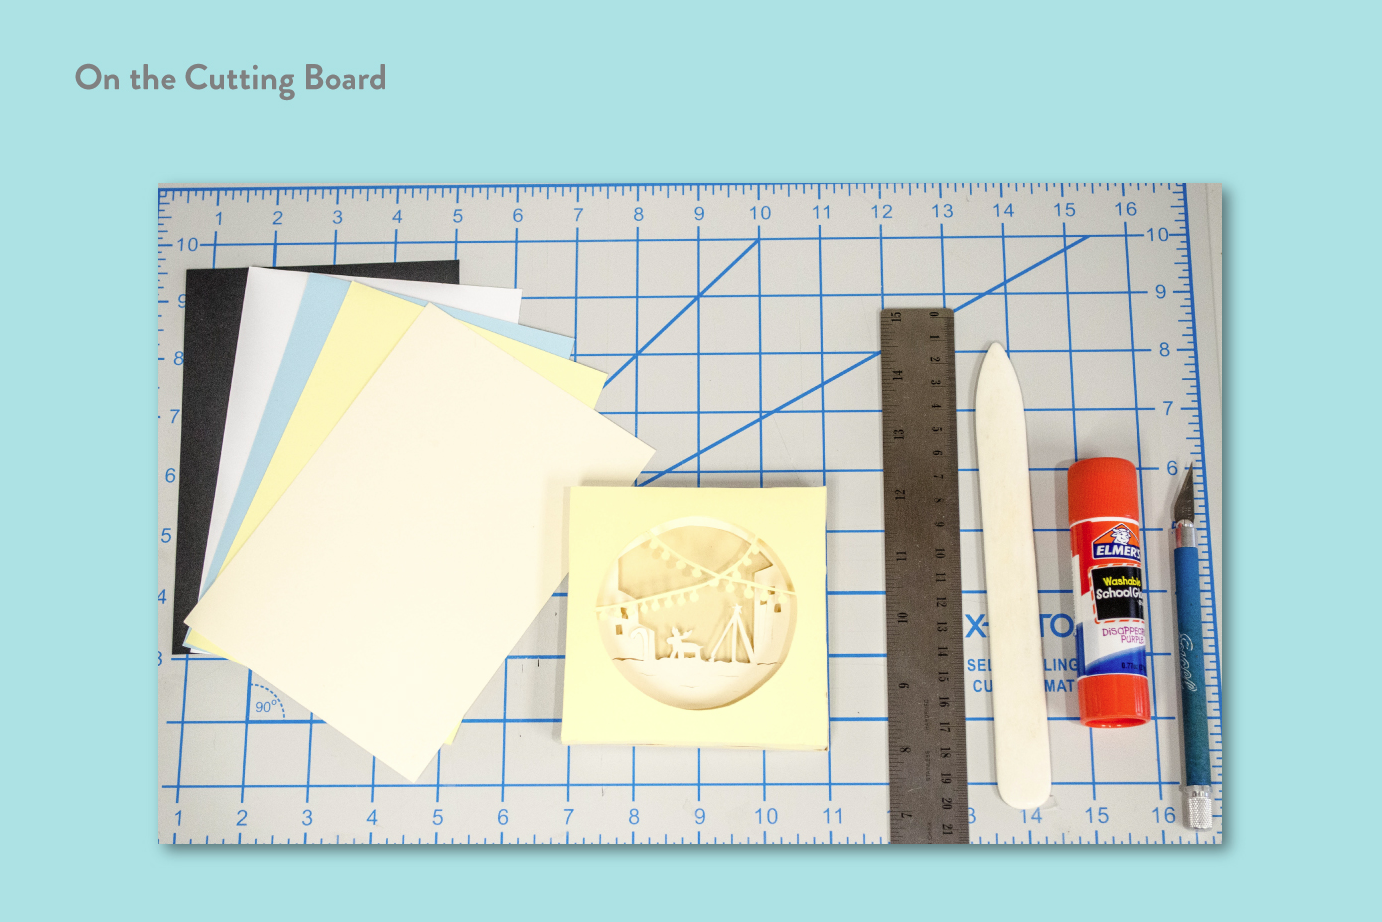 On the Cutting Board (Photo of paper, ruler, glue, and materials to make image for social media use)